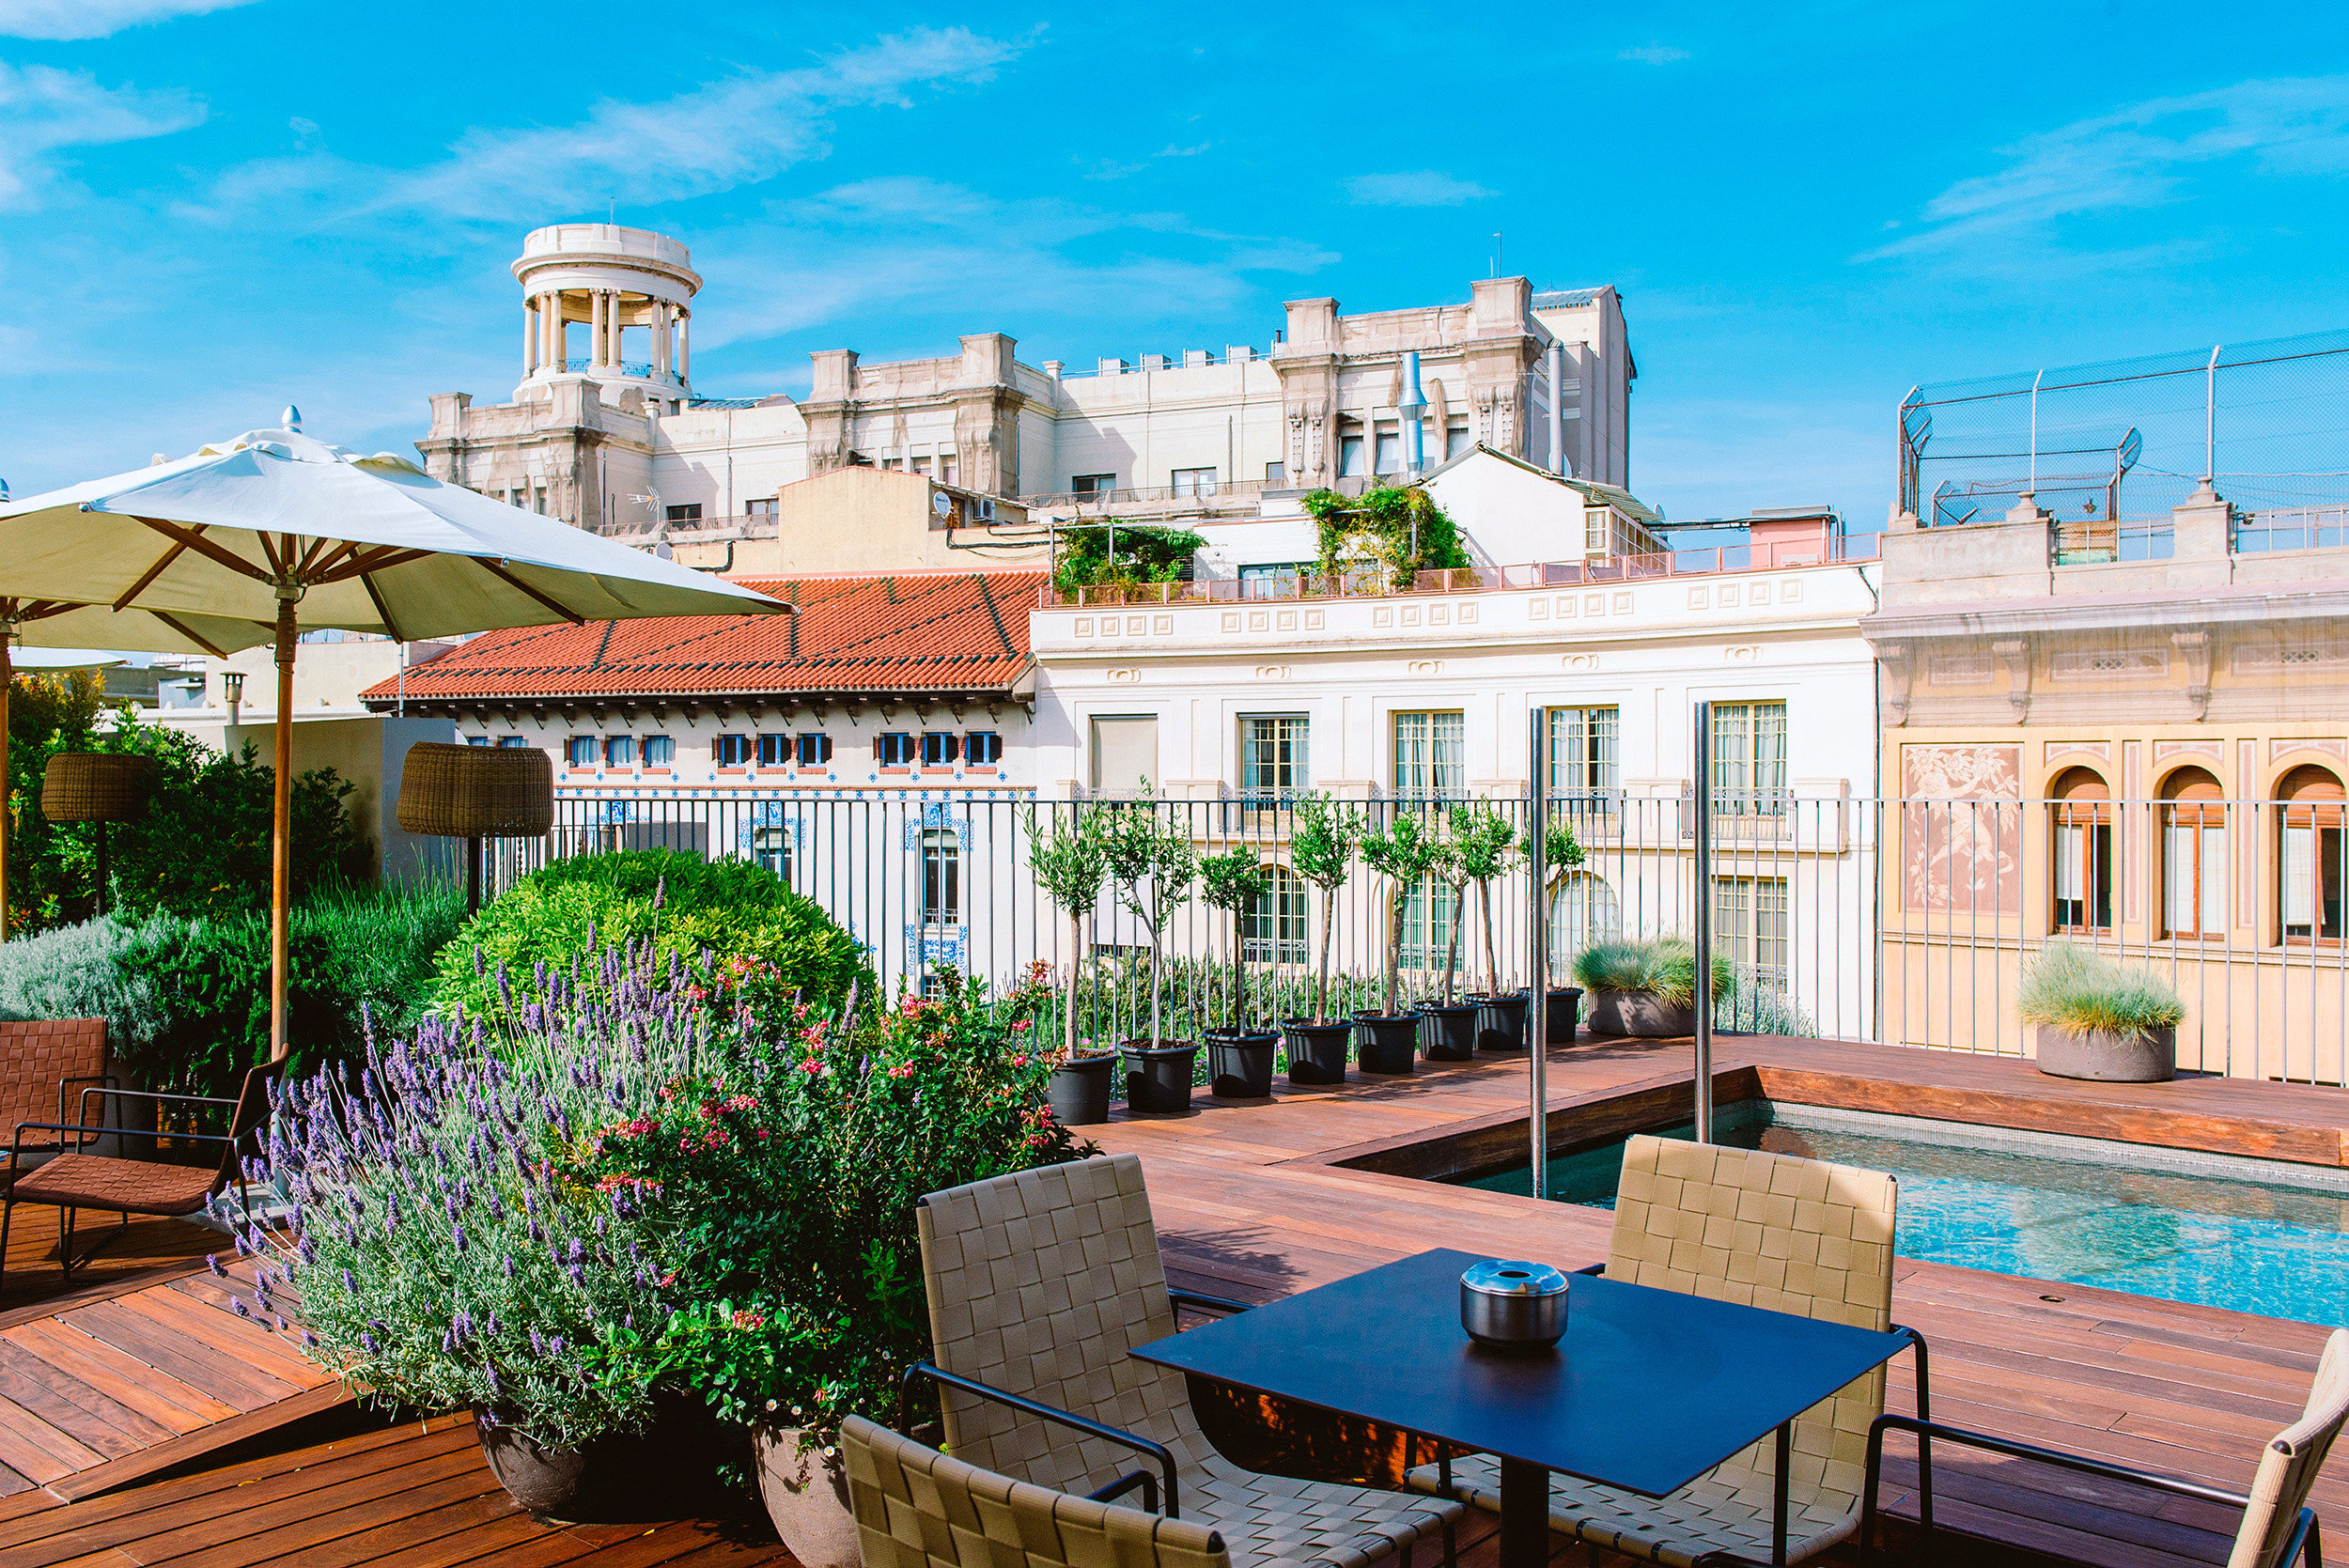 Barcelona Boutique Boutique Hotels City Deck Hip Hotels Luxury Modern Pool Rooftop Spain sky property Resort building home swimming pool palace Villa mansion condominium walkway hacienda plaza outdoor structure Garden stone